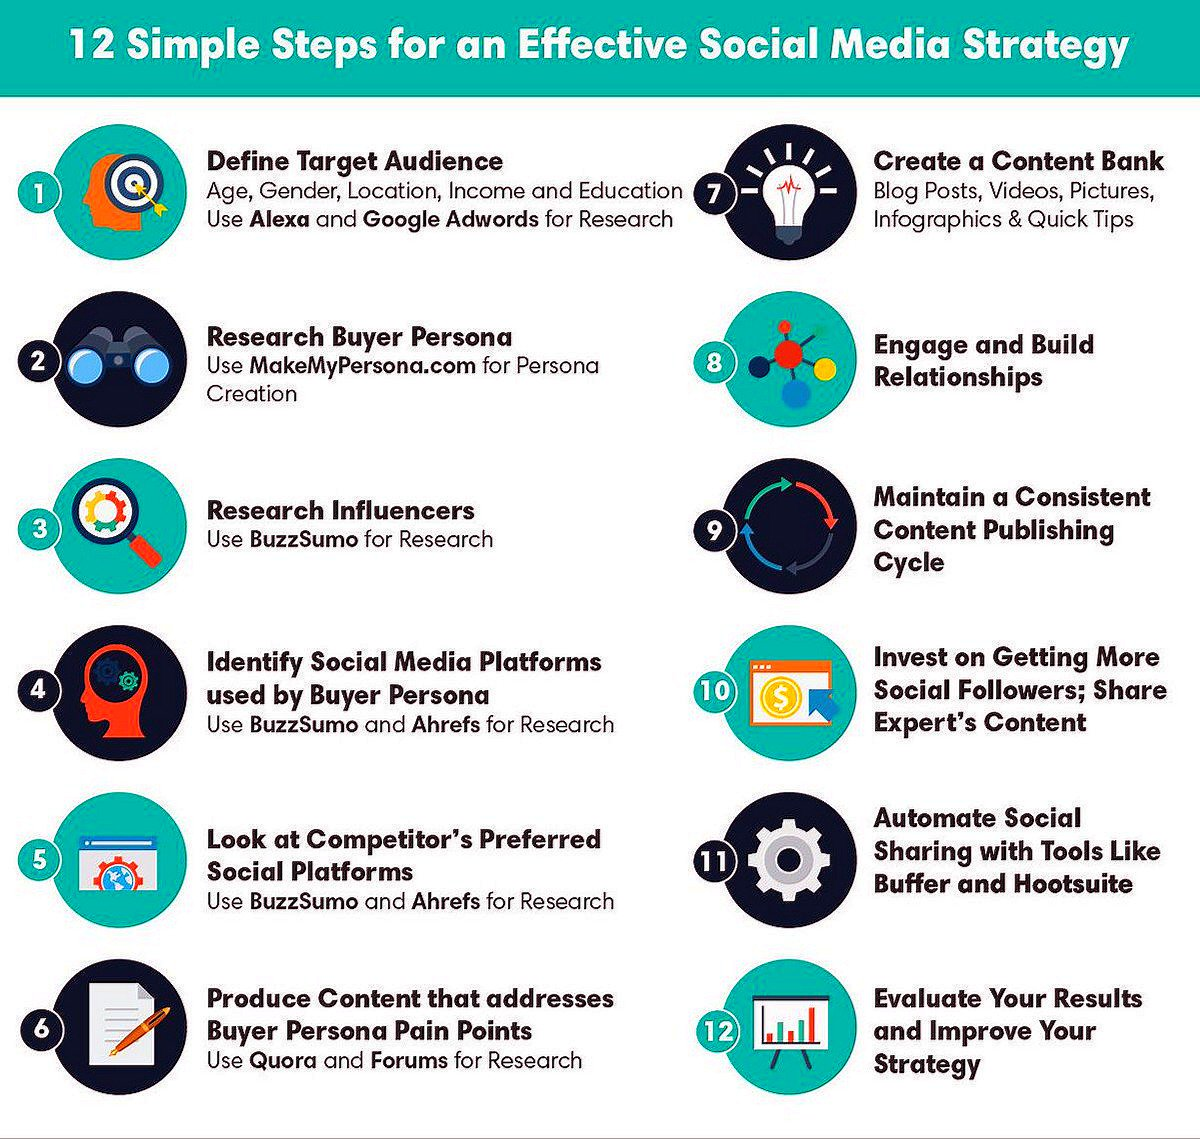 12 Simple Steps to Build Your Effective #SocialMedia Strategy [Infographic]  #GrowthHacking #SocialMediaMarketing #SMM<br>http://pic.twitter.com/eVgcLHYOTp